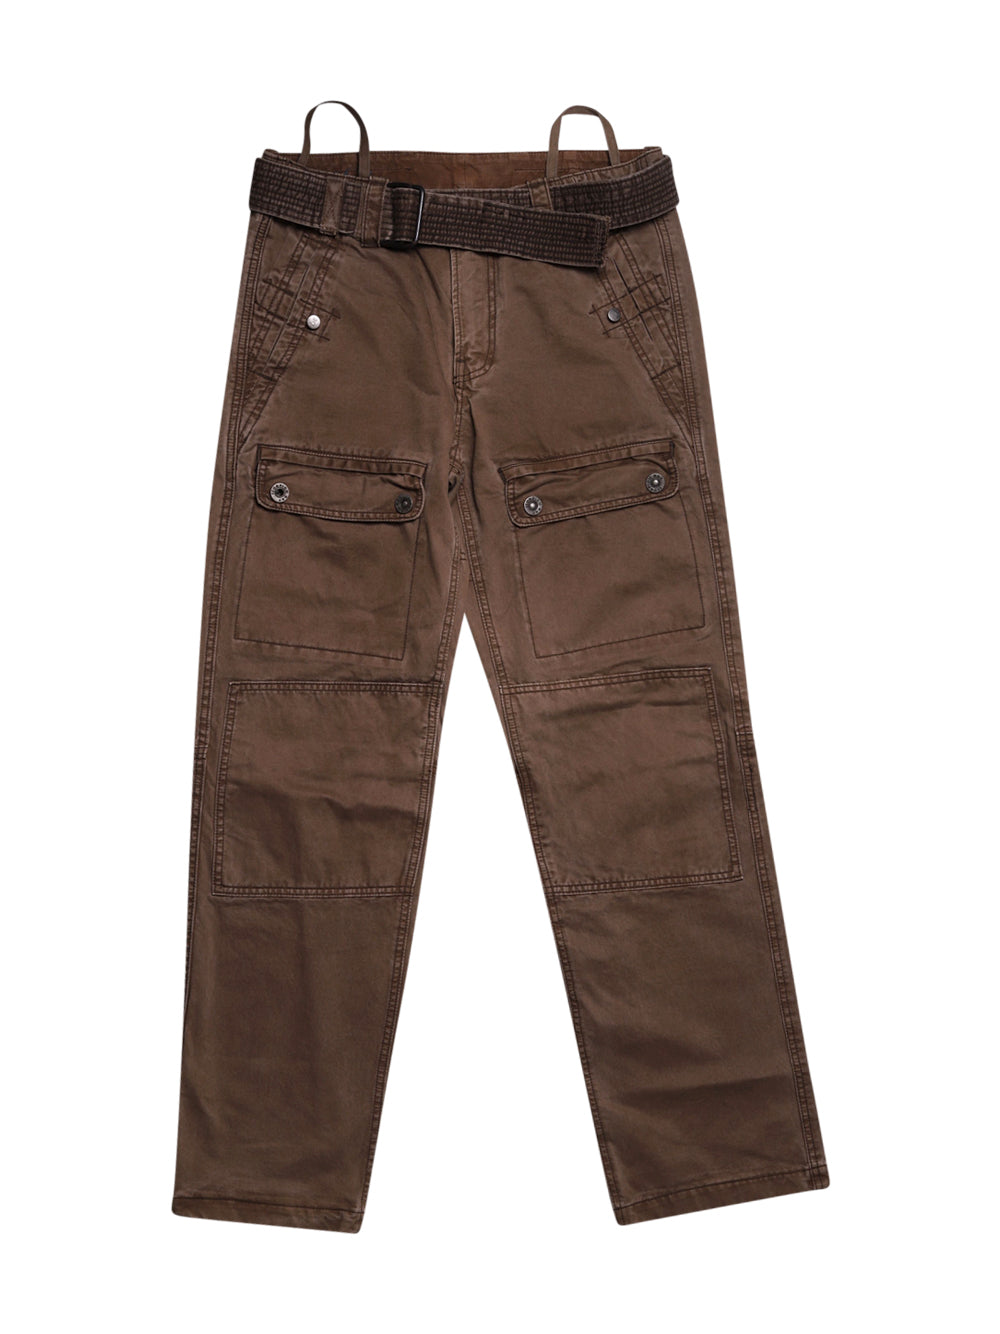 Front photo of Preloved Scorpion Bay Brown Man's trousers - size 38/M